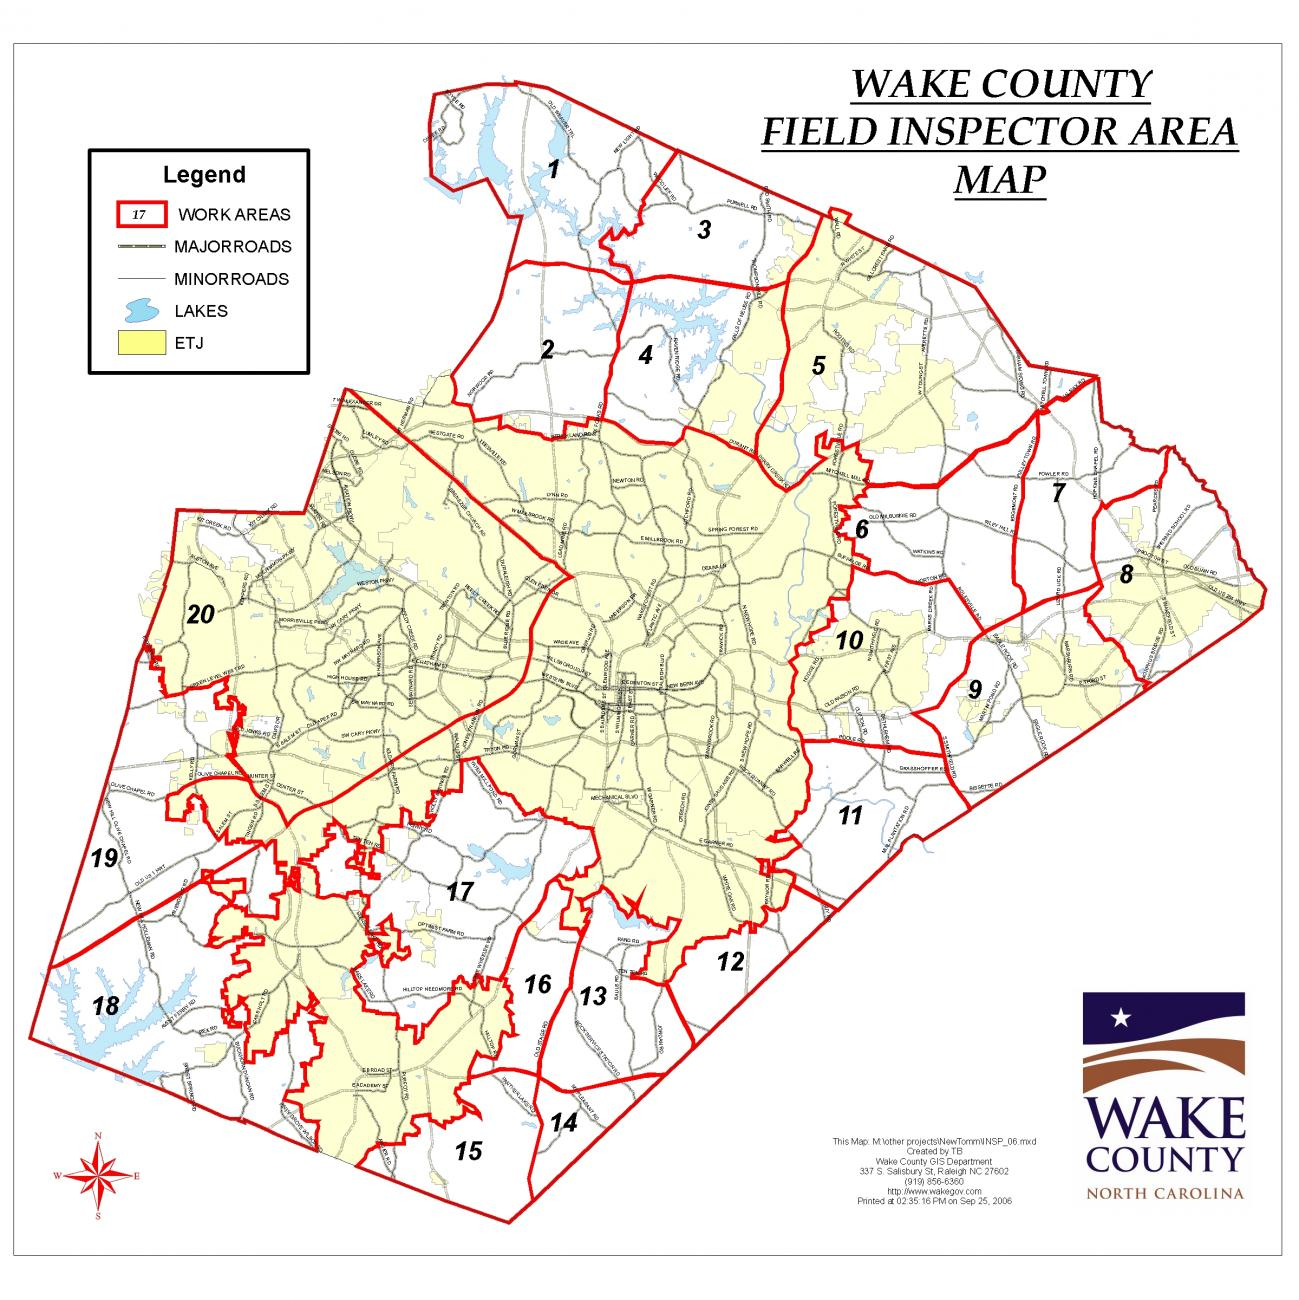 map showing regions of the county where Wake County does building inspections